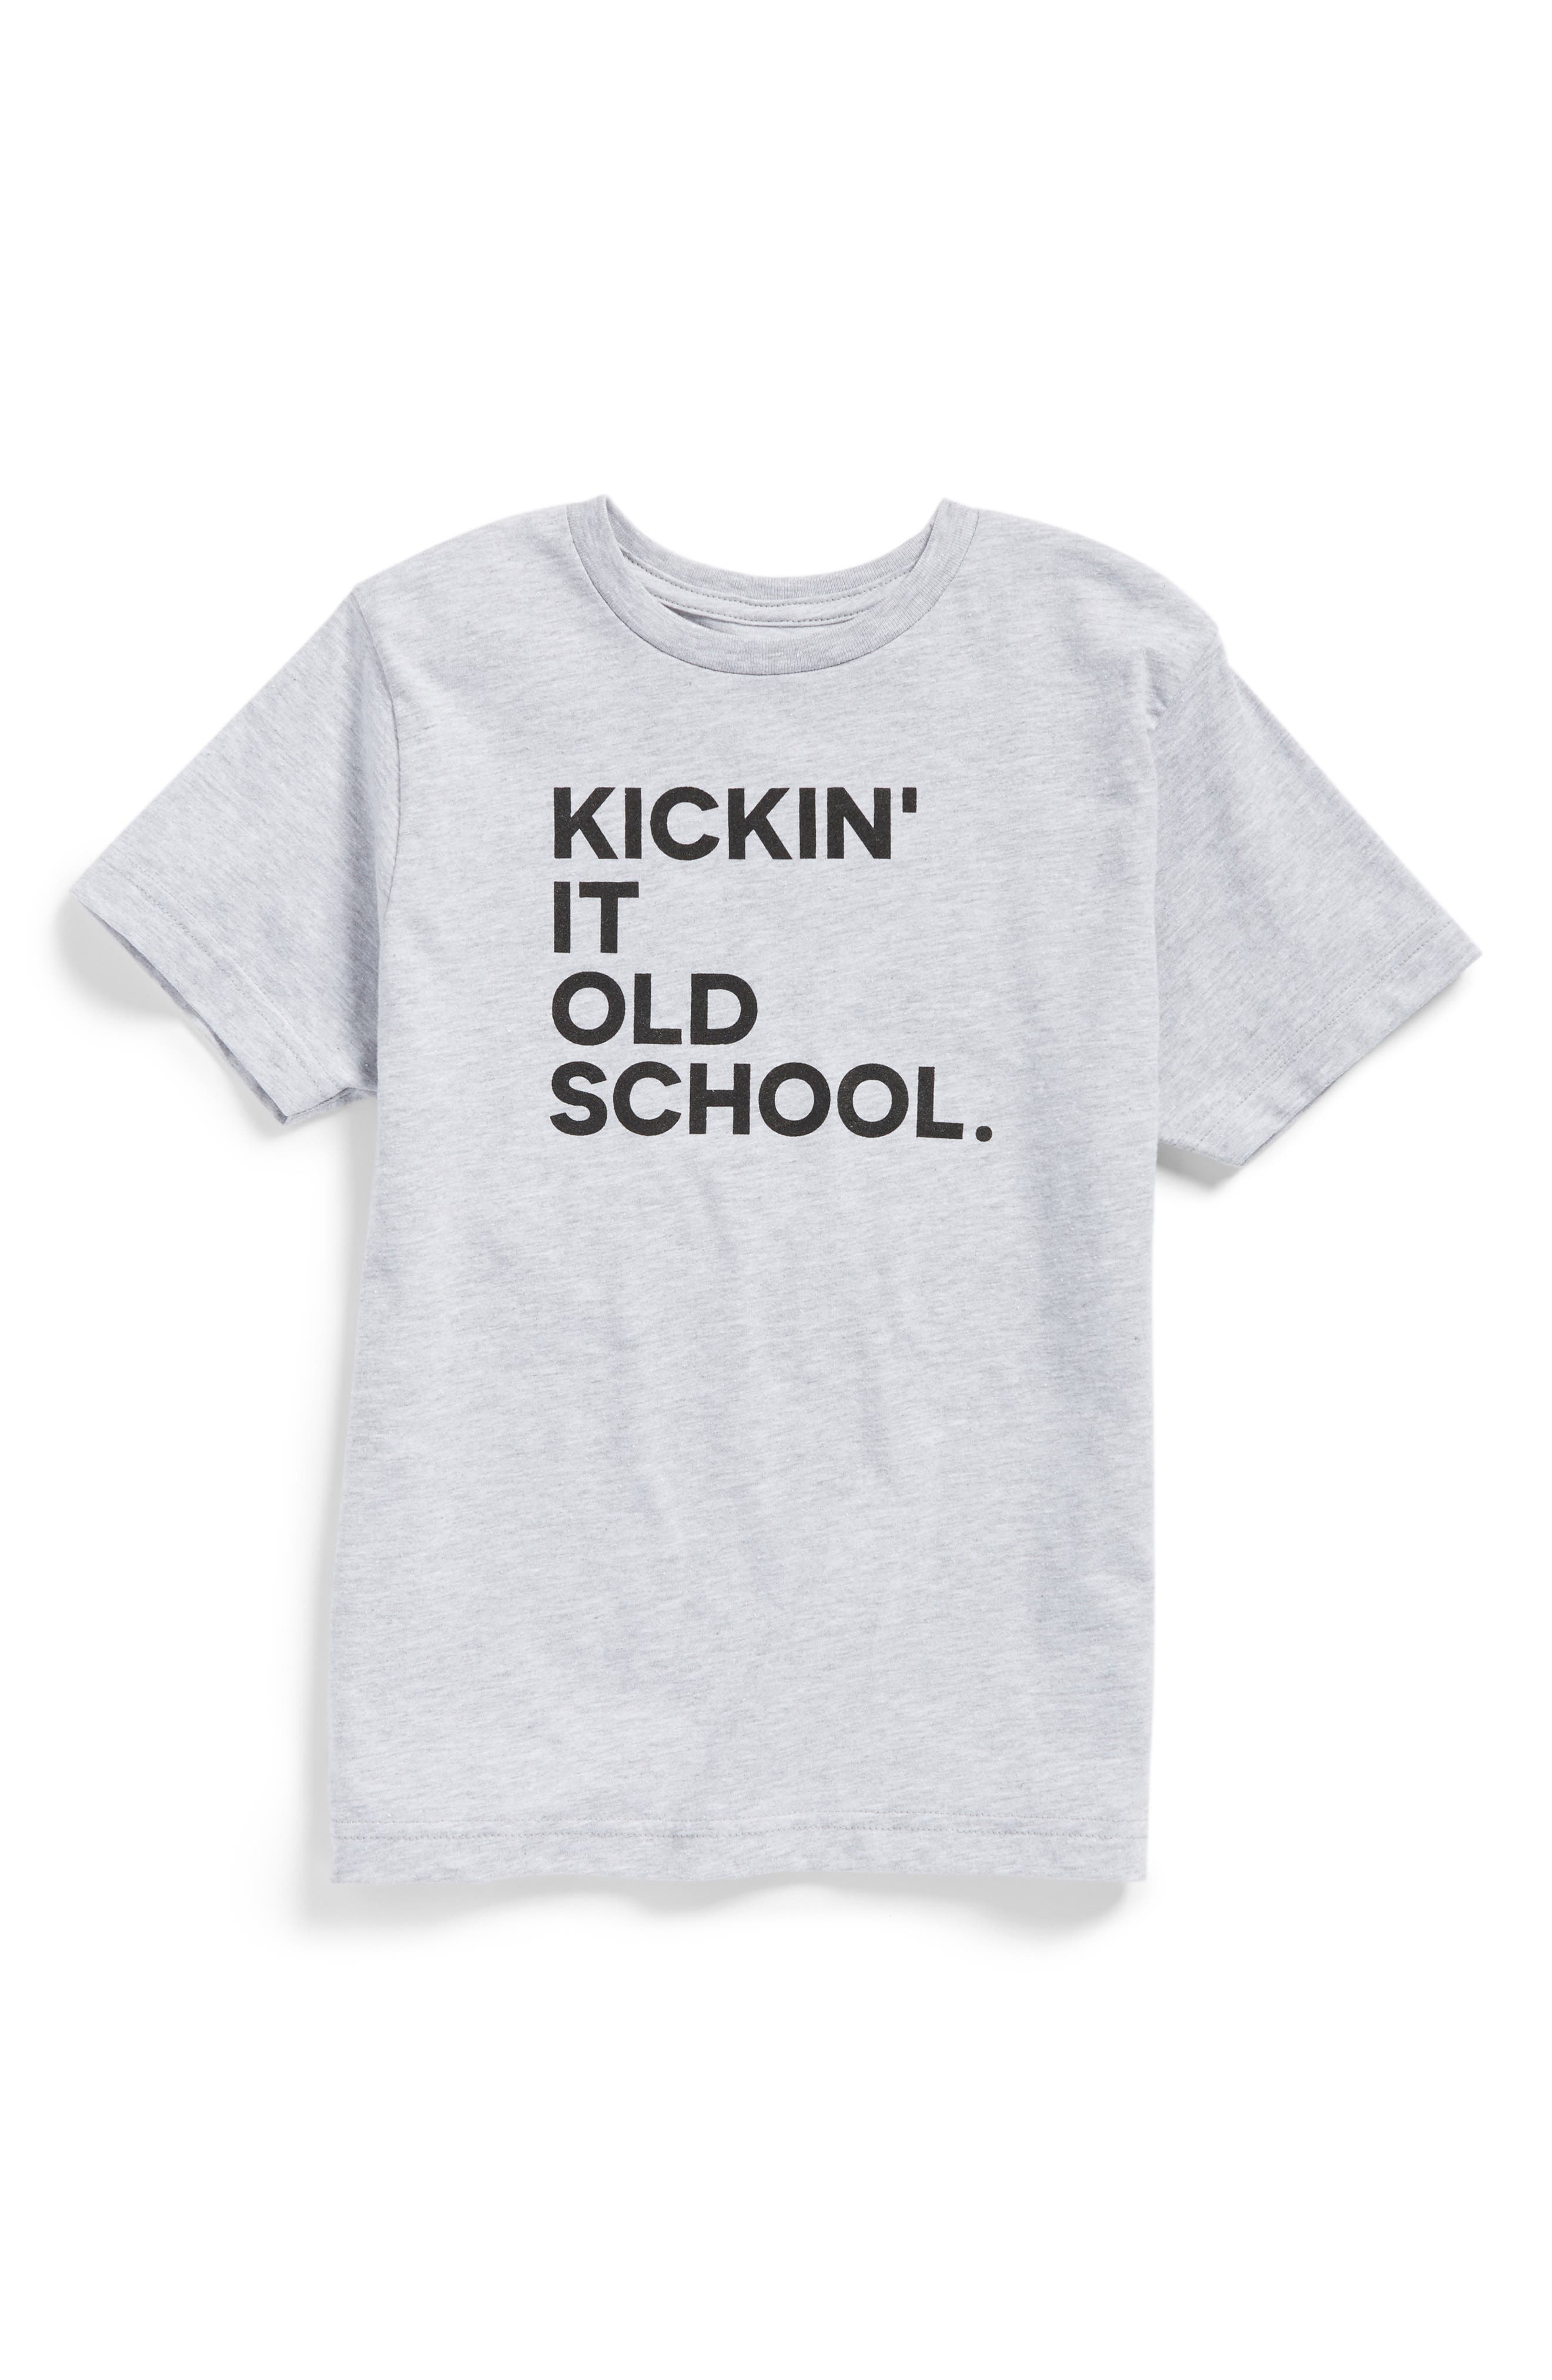 Alternate Image 1 Selected - Dilascia Kickin' It Old School Graphic T-Shirt (Toddler Boys, Little Boys & Big Boys)